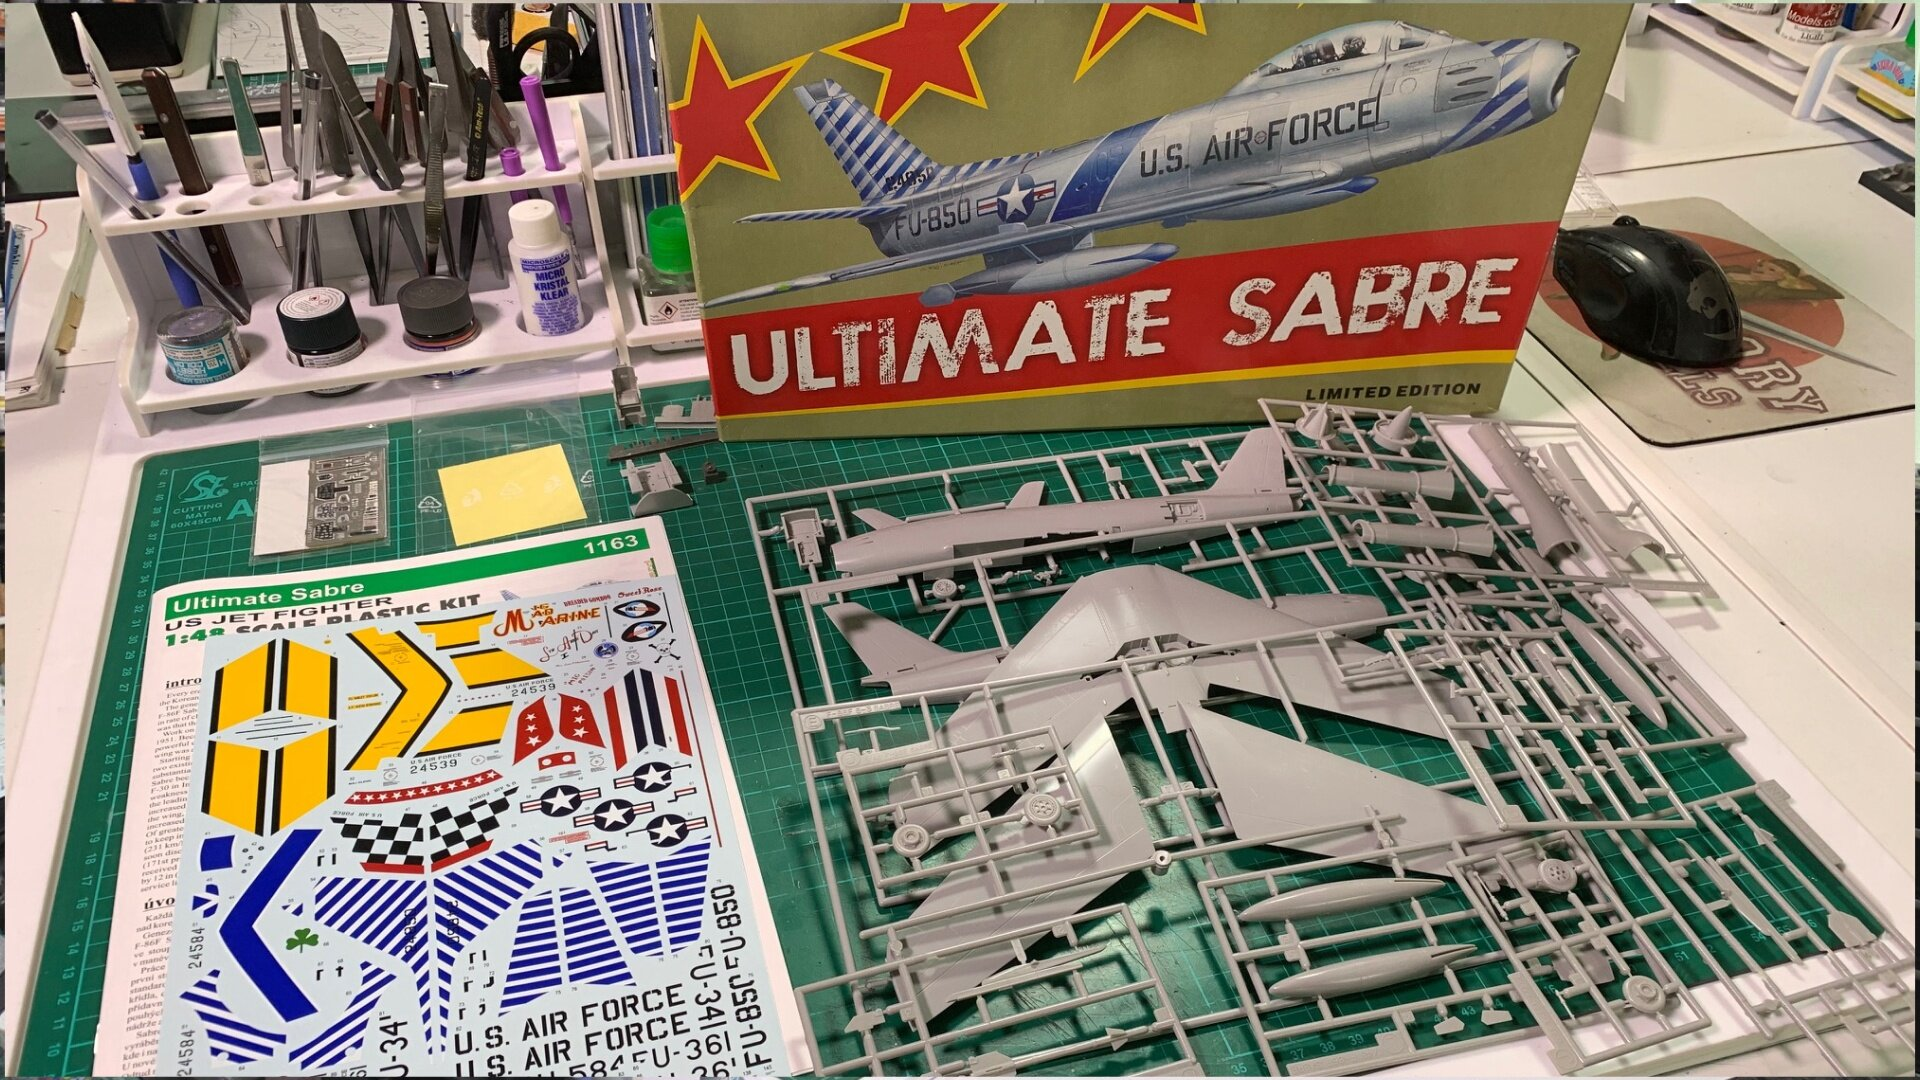 F-86 Sabre Scale: 1/48   Manufacturer: Eduard/ Hasegawa   Parts used: Out Of The Box   Main paints used: Tamiya and Xtream Metals